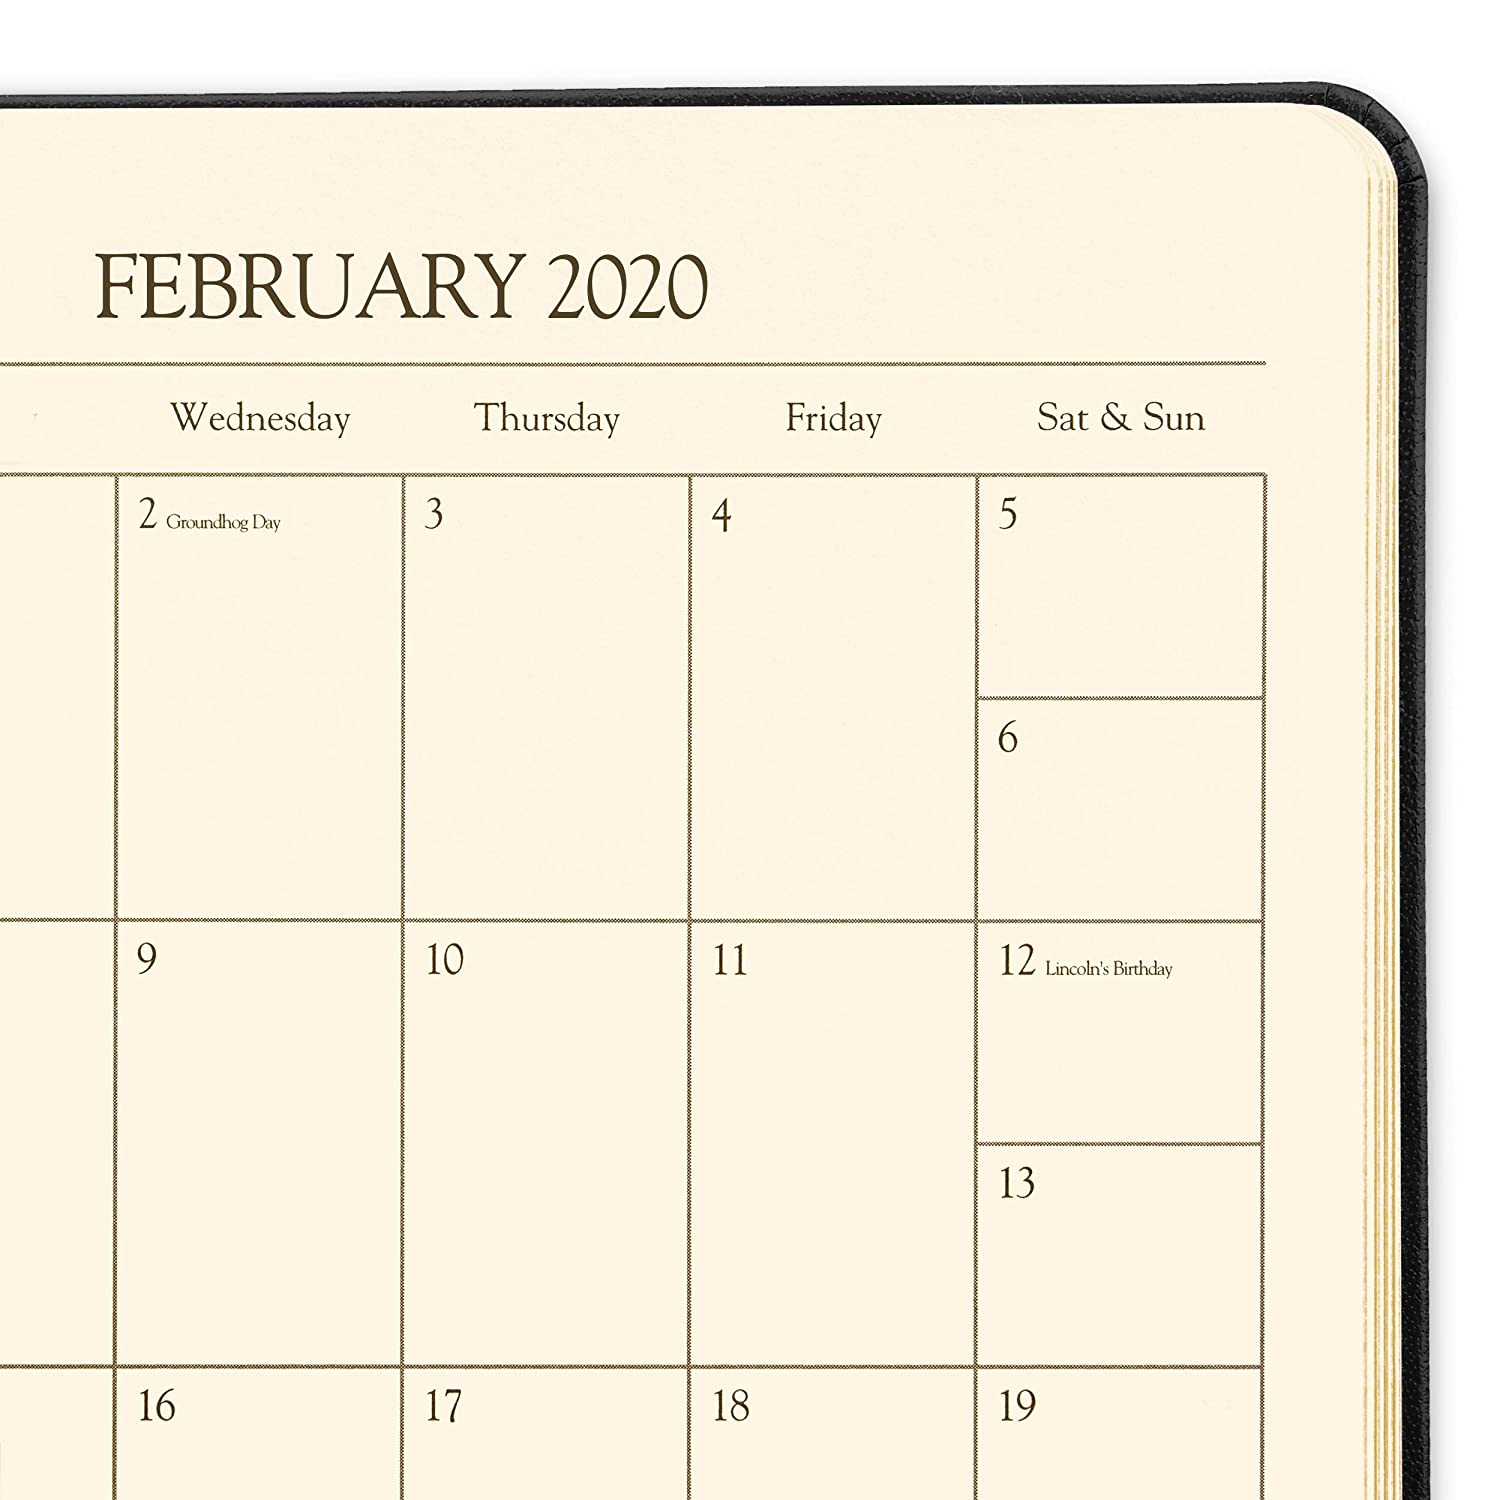 2020 Large Weekly Leather Planner by Gallery Leather - Acadia Navy (Blue) - Open Format 9.75